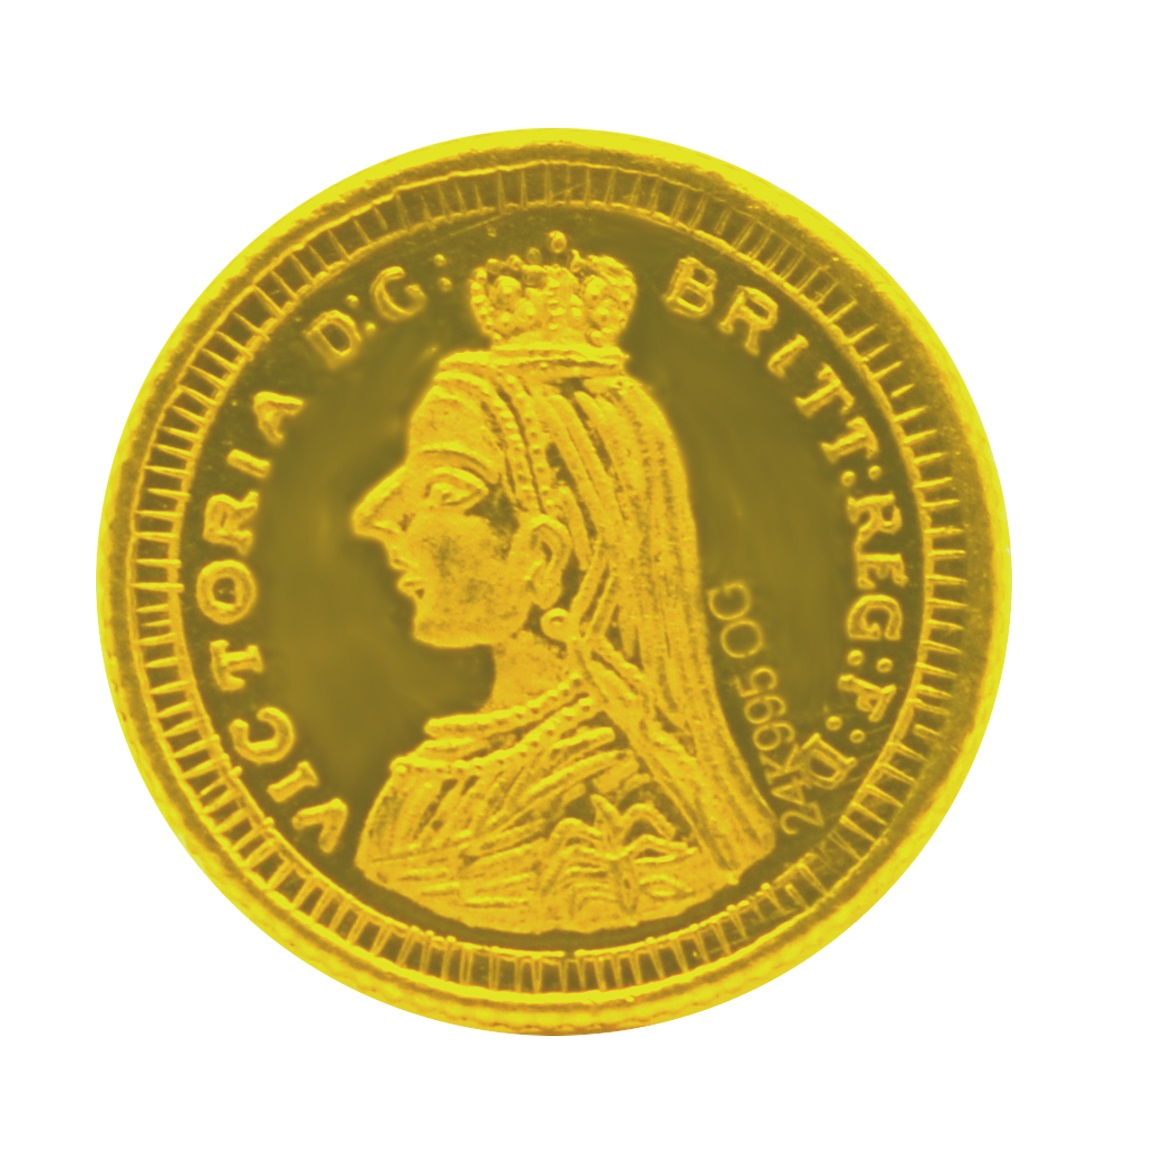 5 Grams, 24KT (995) Pure Gold Coin